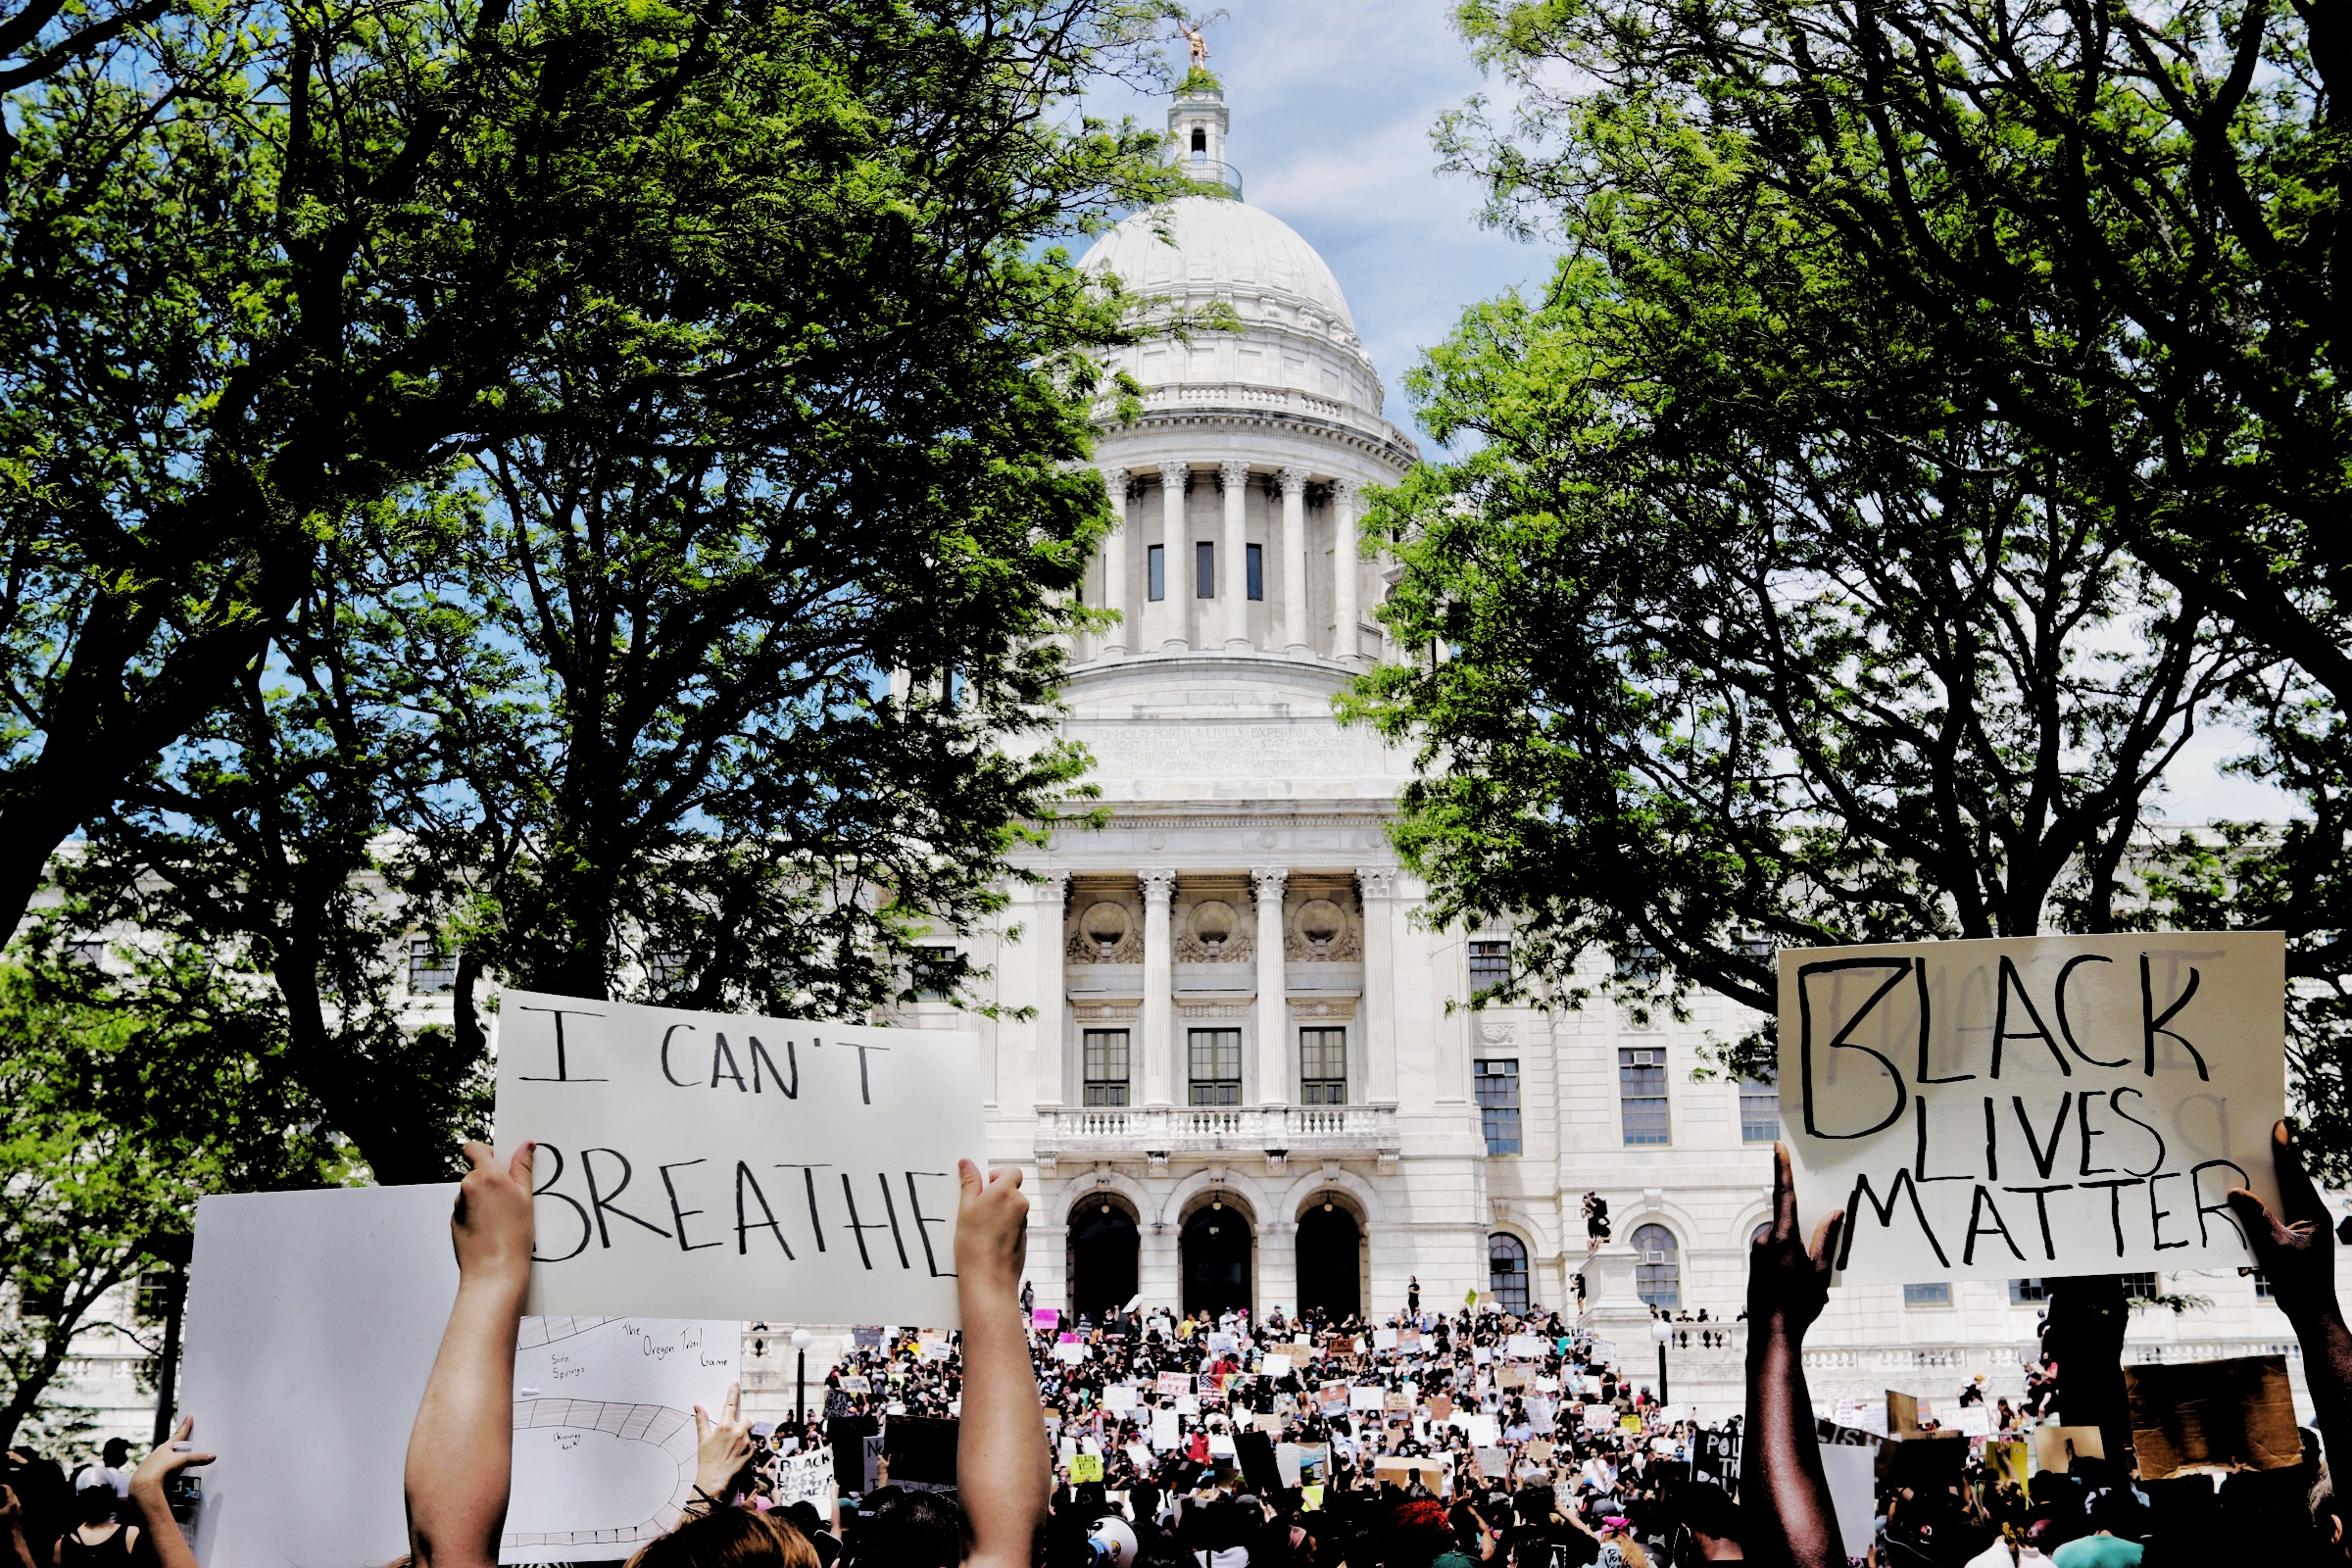 Rhode Island State House Black Lives Matter Protest 5.30.20